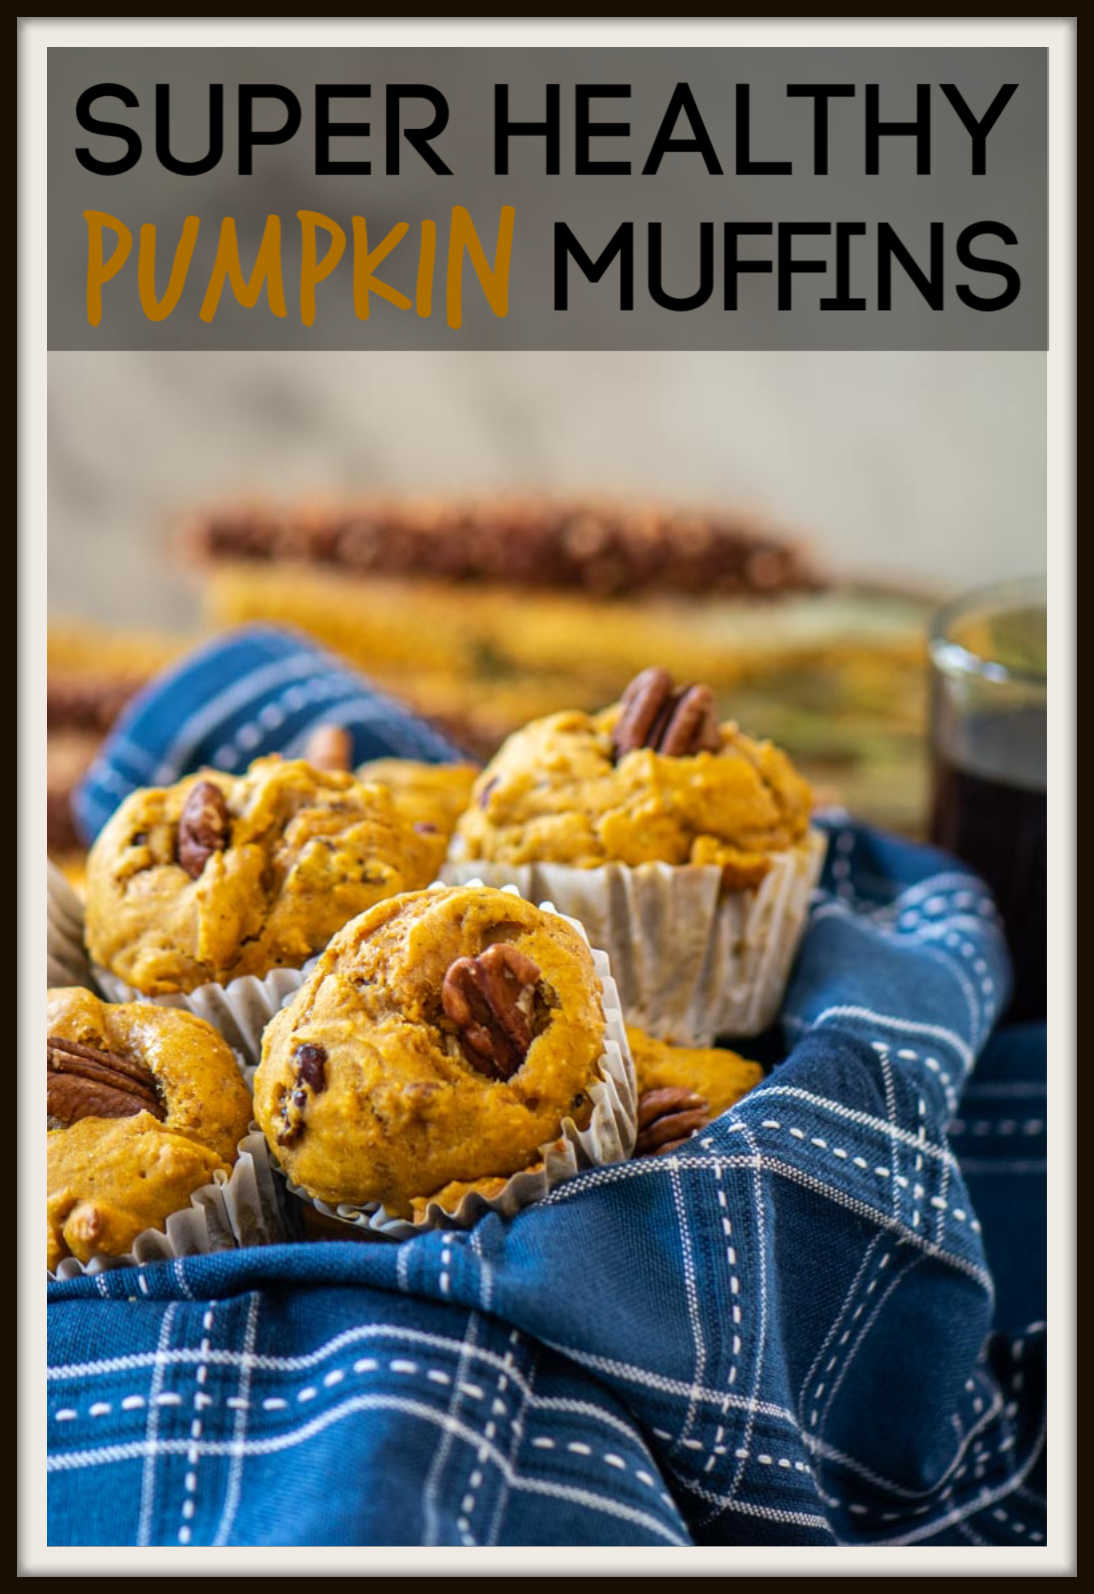 Healthy Pumpkin Yogurt Muffins are Delish! Made with all natural ingredients, this is a snack you'll be happy to give your kids. Made in just a few minutes, this is a perfect snack for a fall morning! #pumpkin #muffins #pumpkinmuffins #craisins #pecans